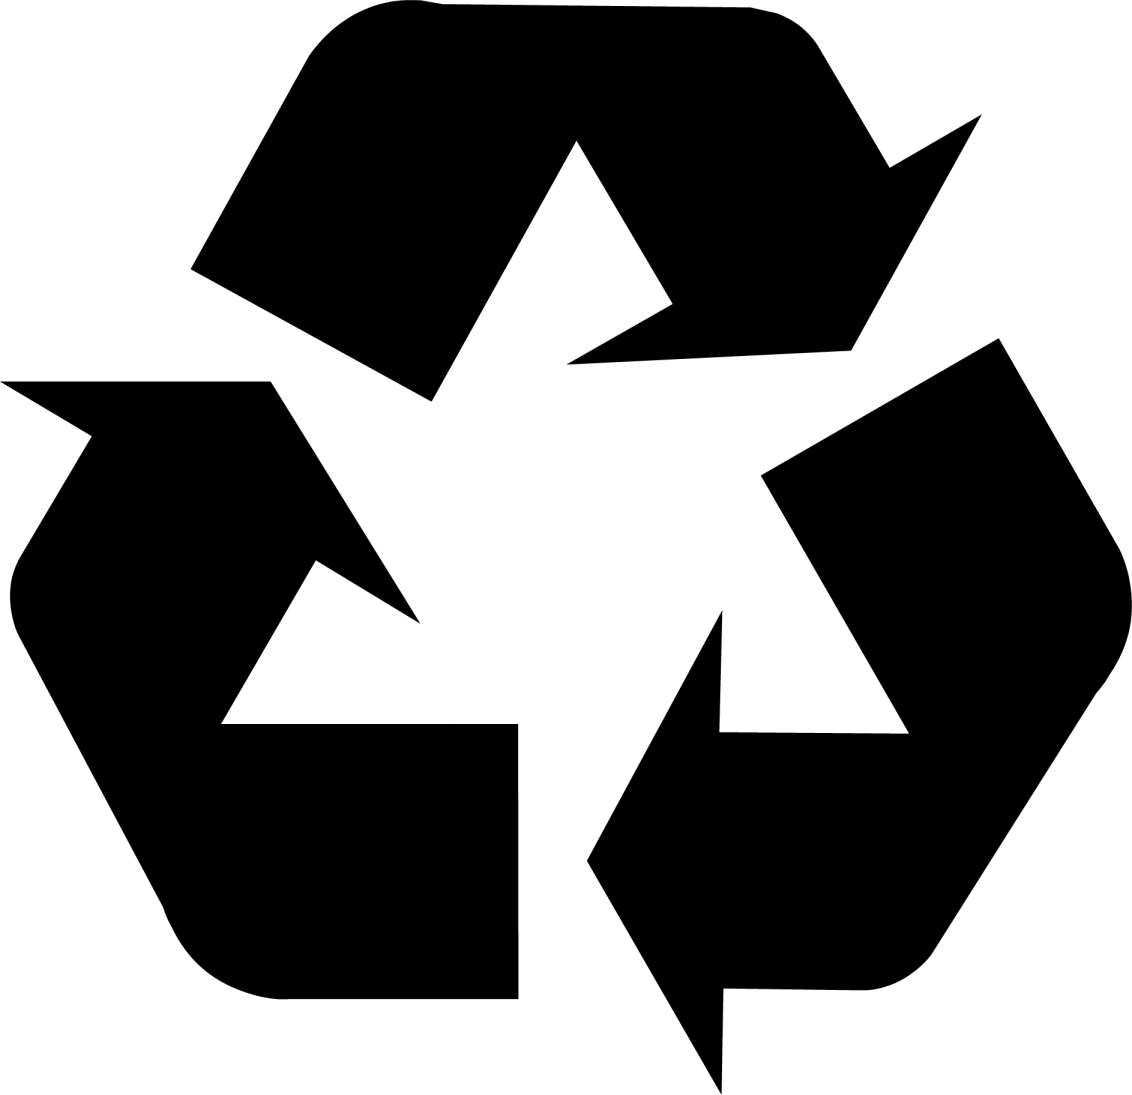 17 Logo Recycle Png Recycle Symbol Recycle Logo Recycle Sign